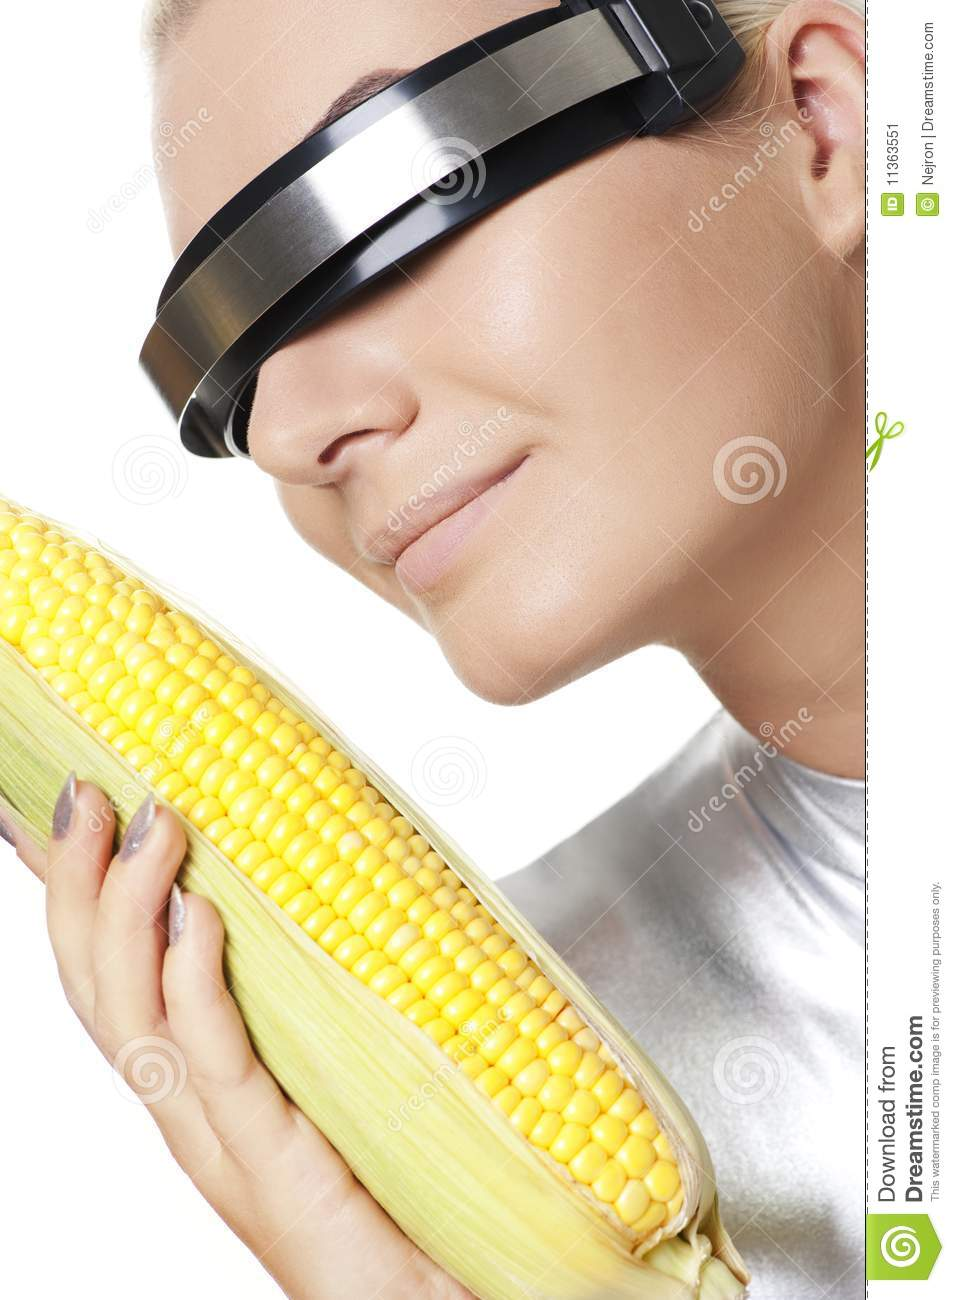 Cyber Woman With A Corn Stock Image - Image: 11363551